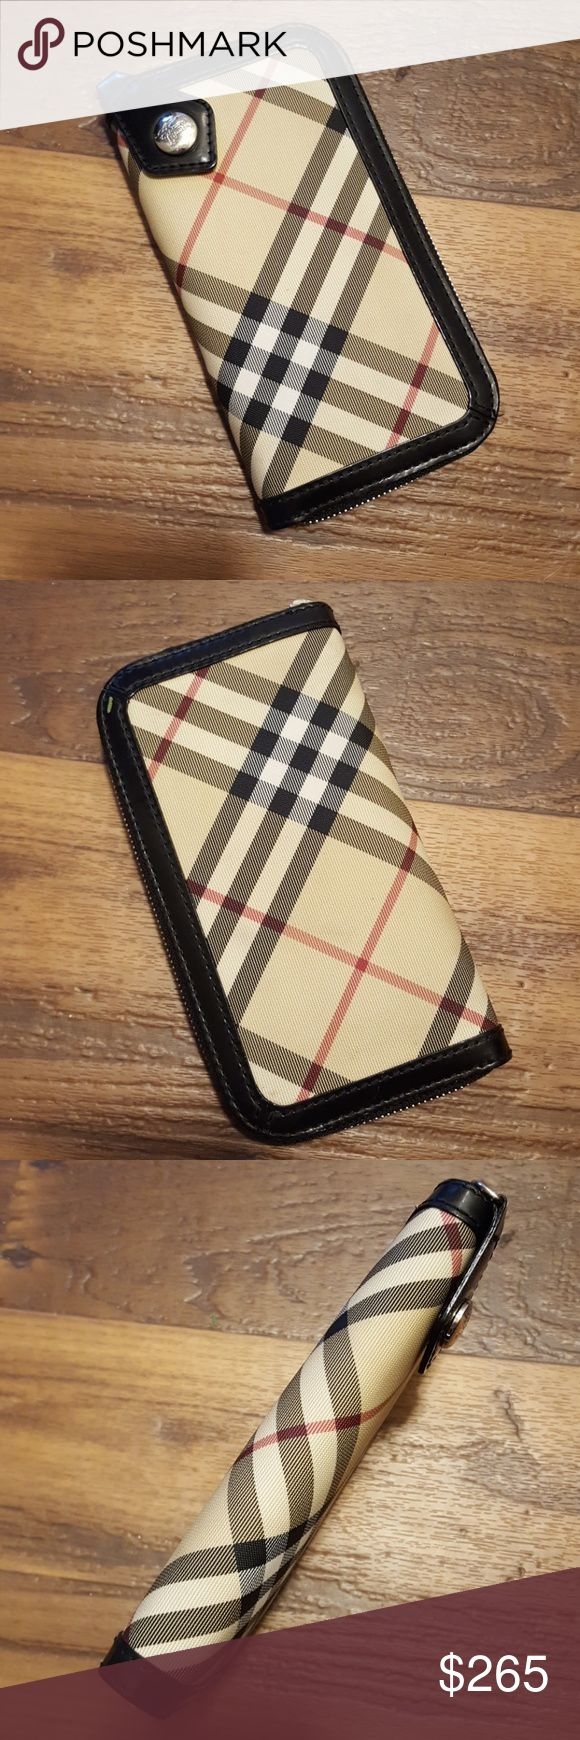 Authentic Burberry Zip wallet ✔price firm ✔This wallet is barely used 🚫no trades Dimensions are 7.5 inches x 4 inches It fits a Galaxy S6. Burberry Bags Wallets